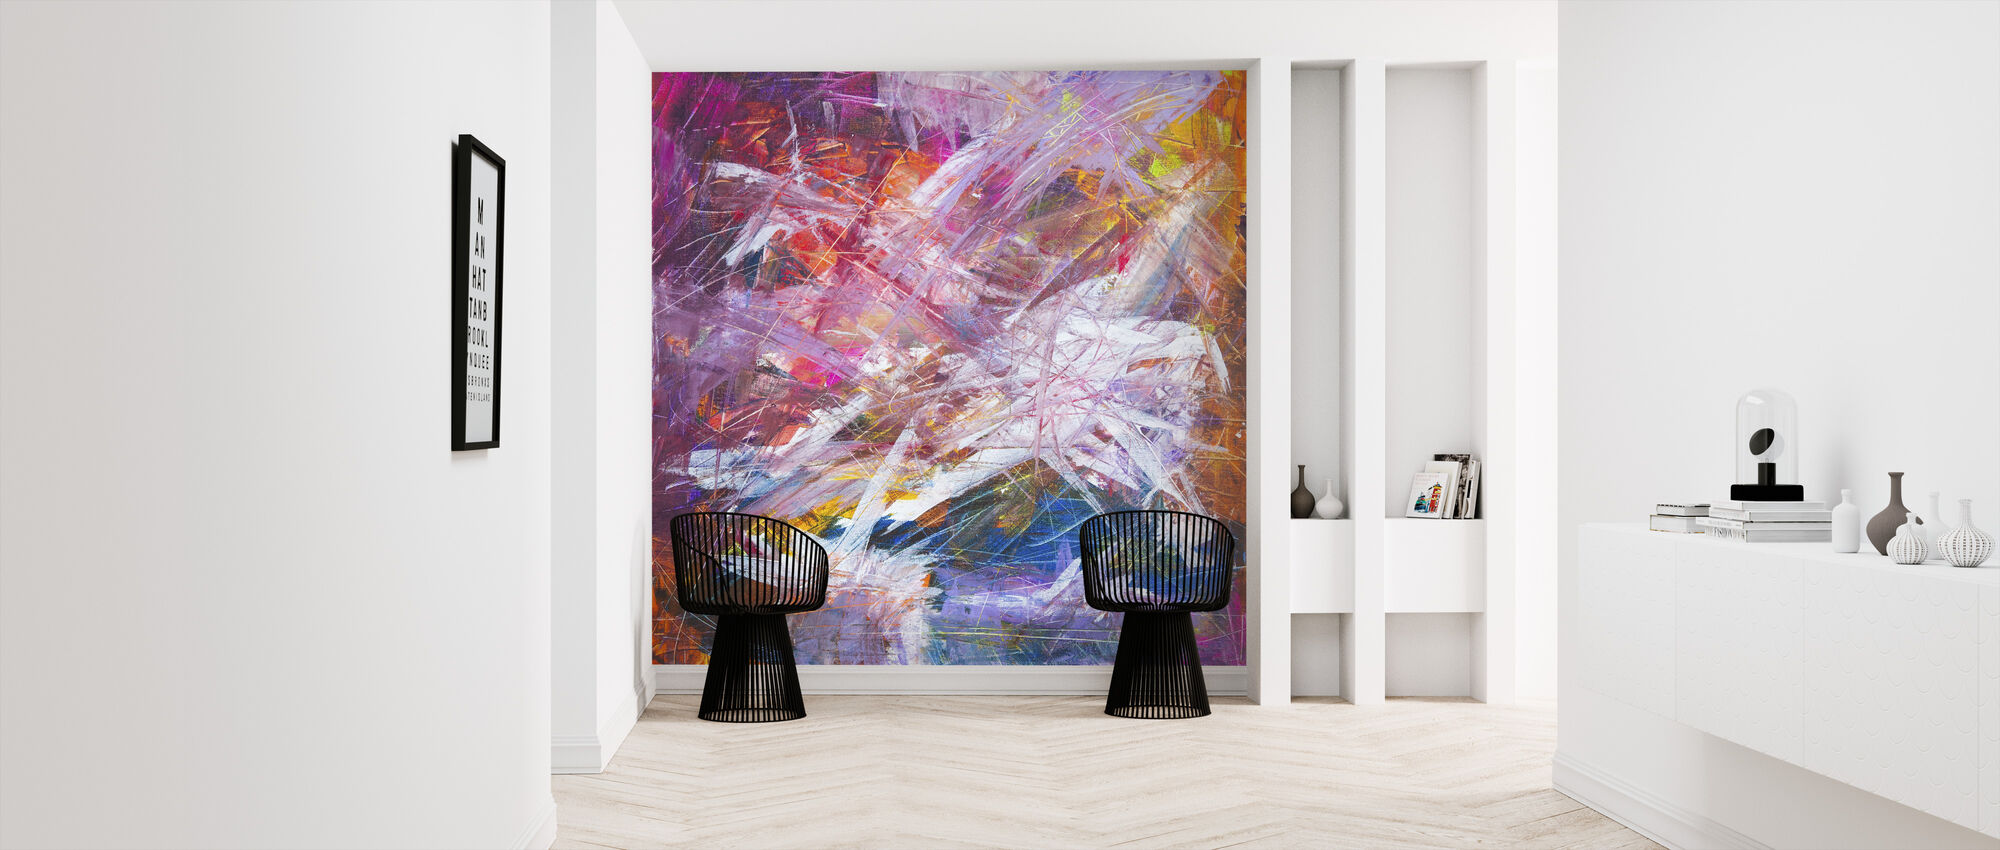 Abstract Painting - Wallpaper - Hallway